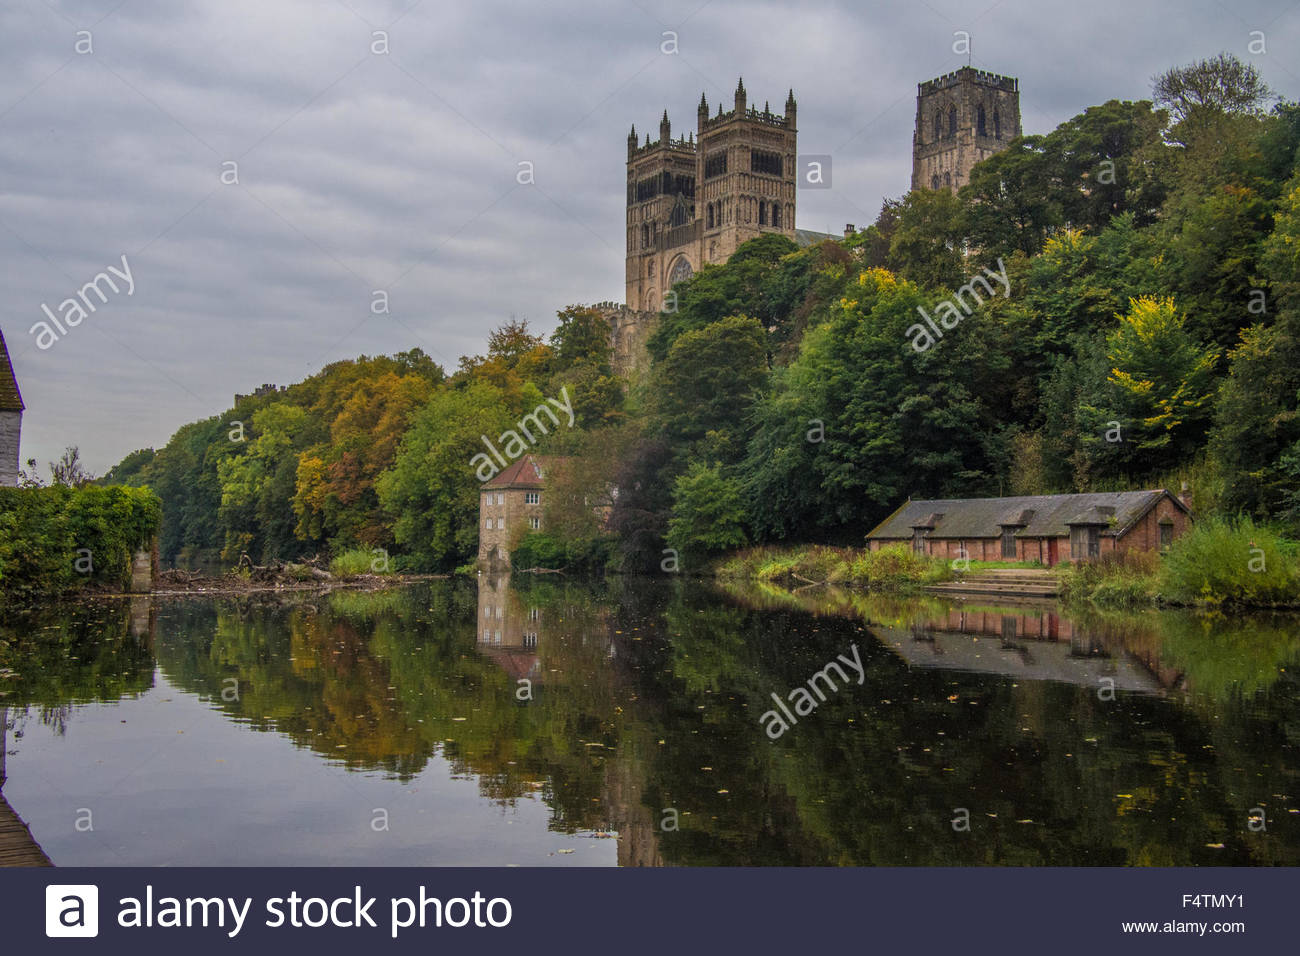 Durham Cathedral and the River Wear, Durham, County Durham, England. - Stock Image